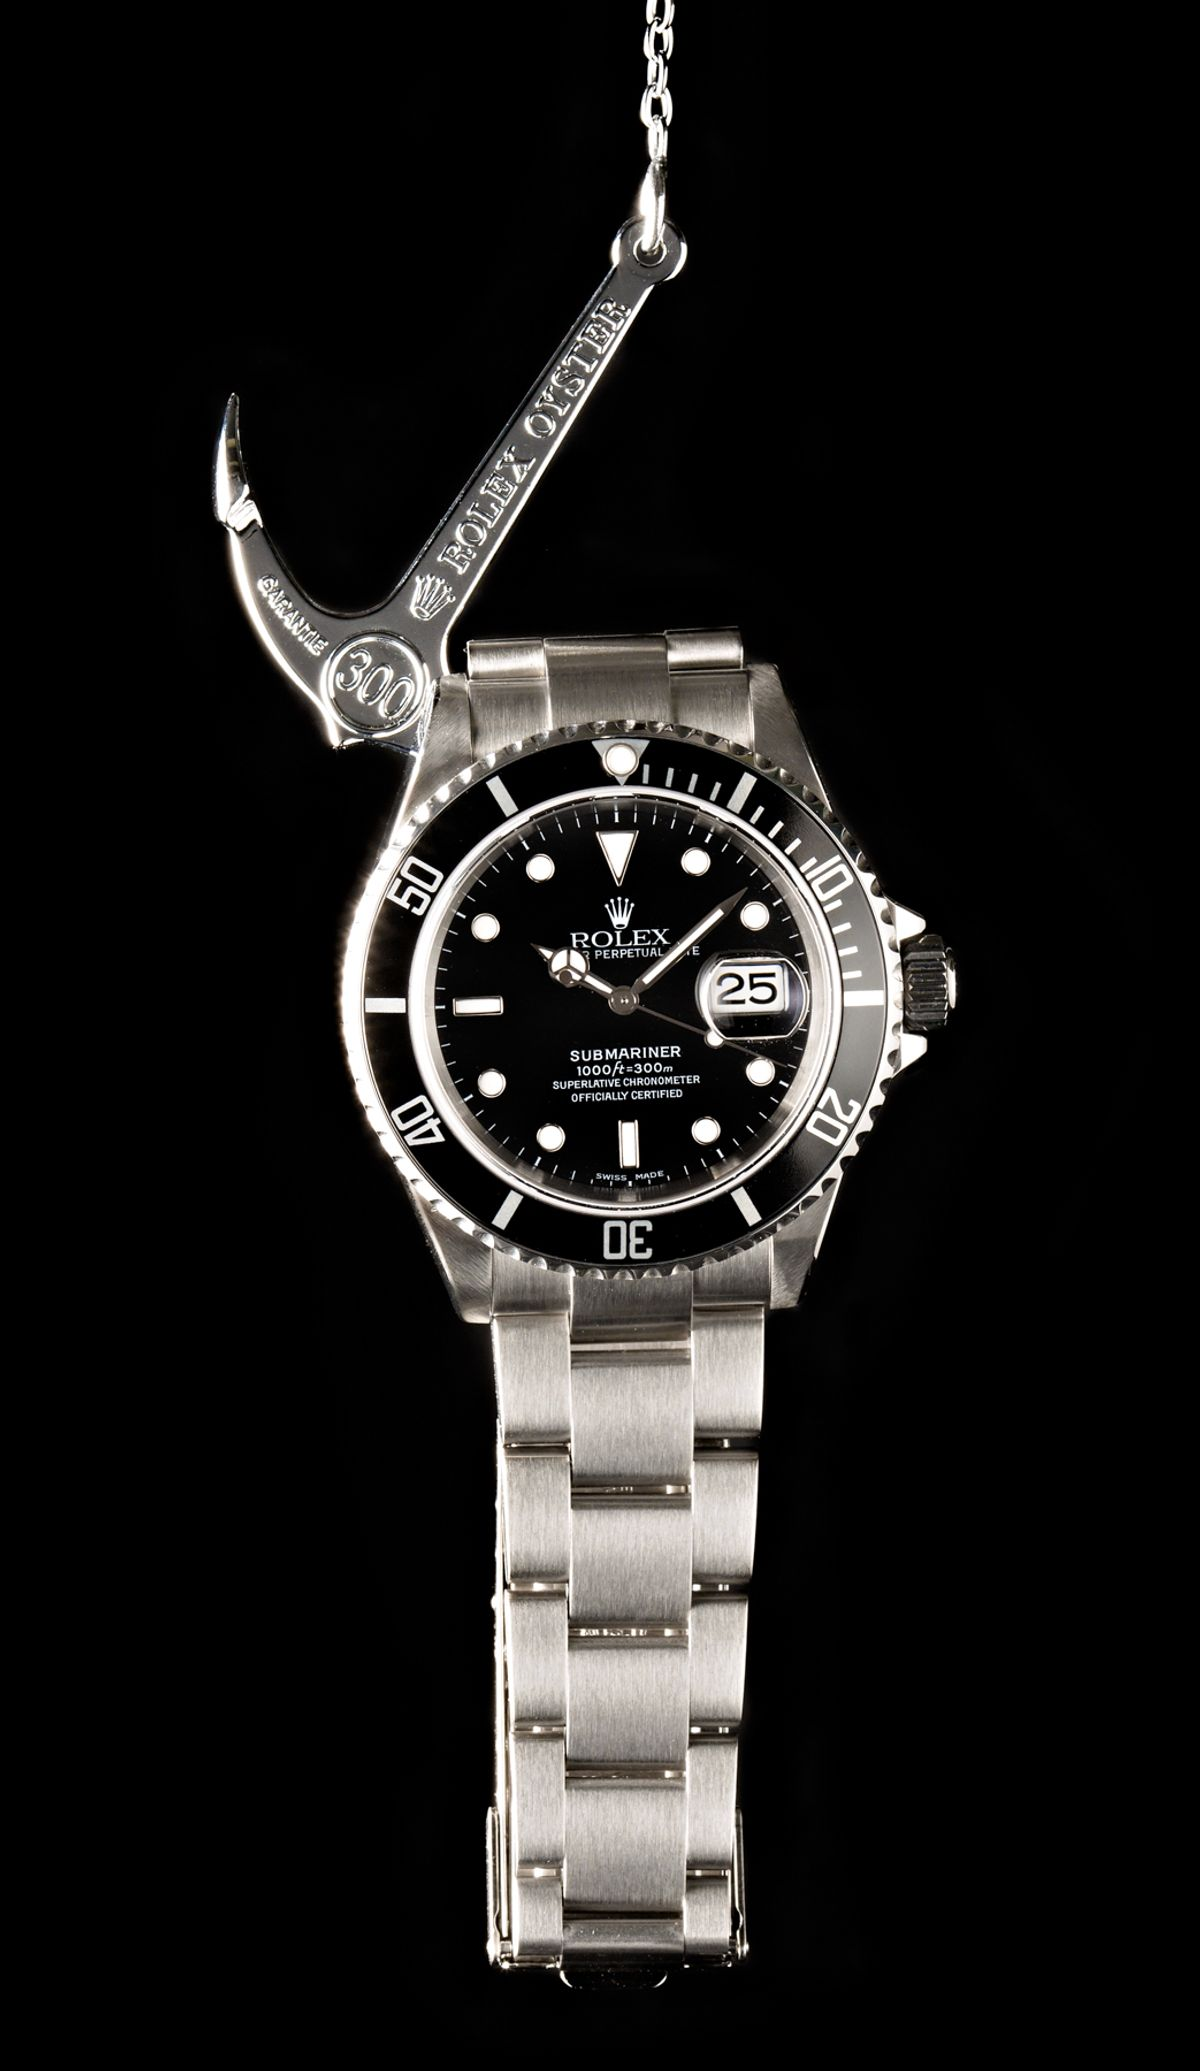 Rolex Submariner Review Oyster Perpetual Date 16610 Black Dial Aluminum Bezel